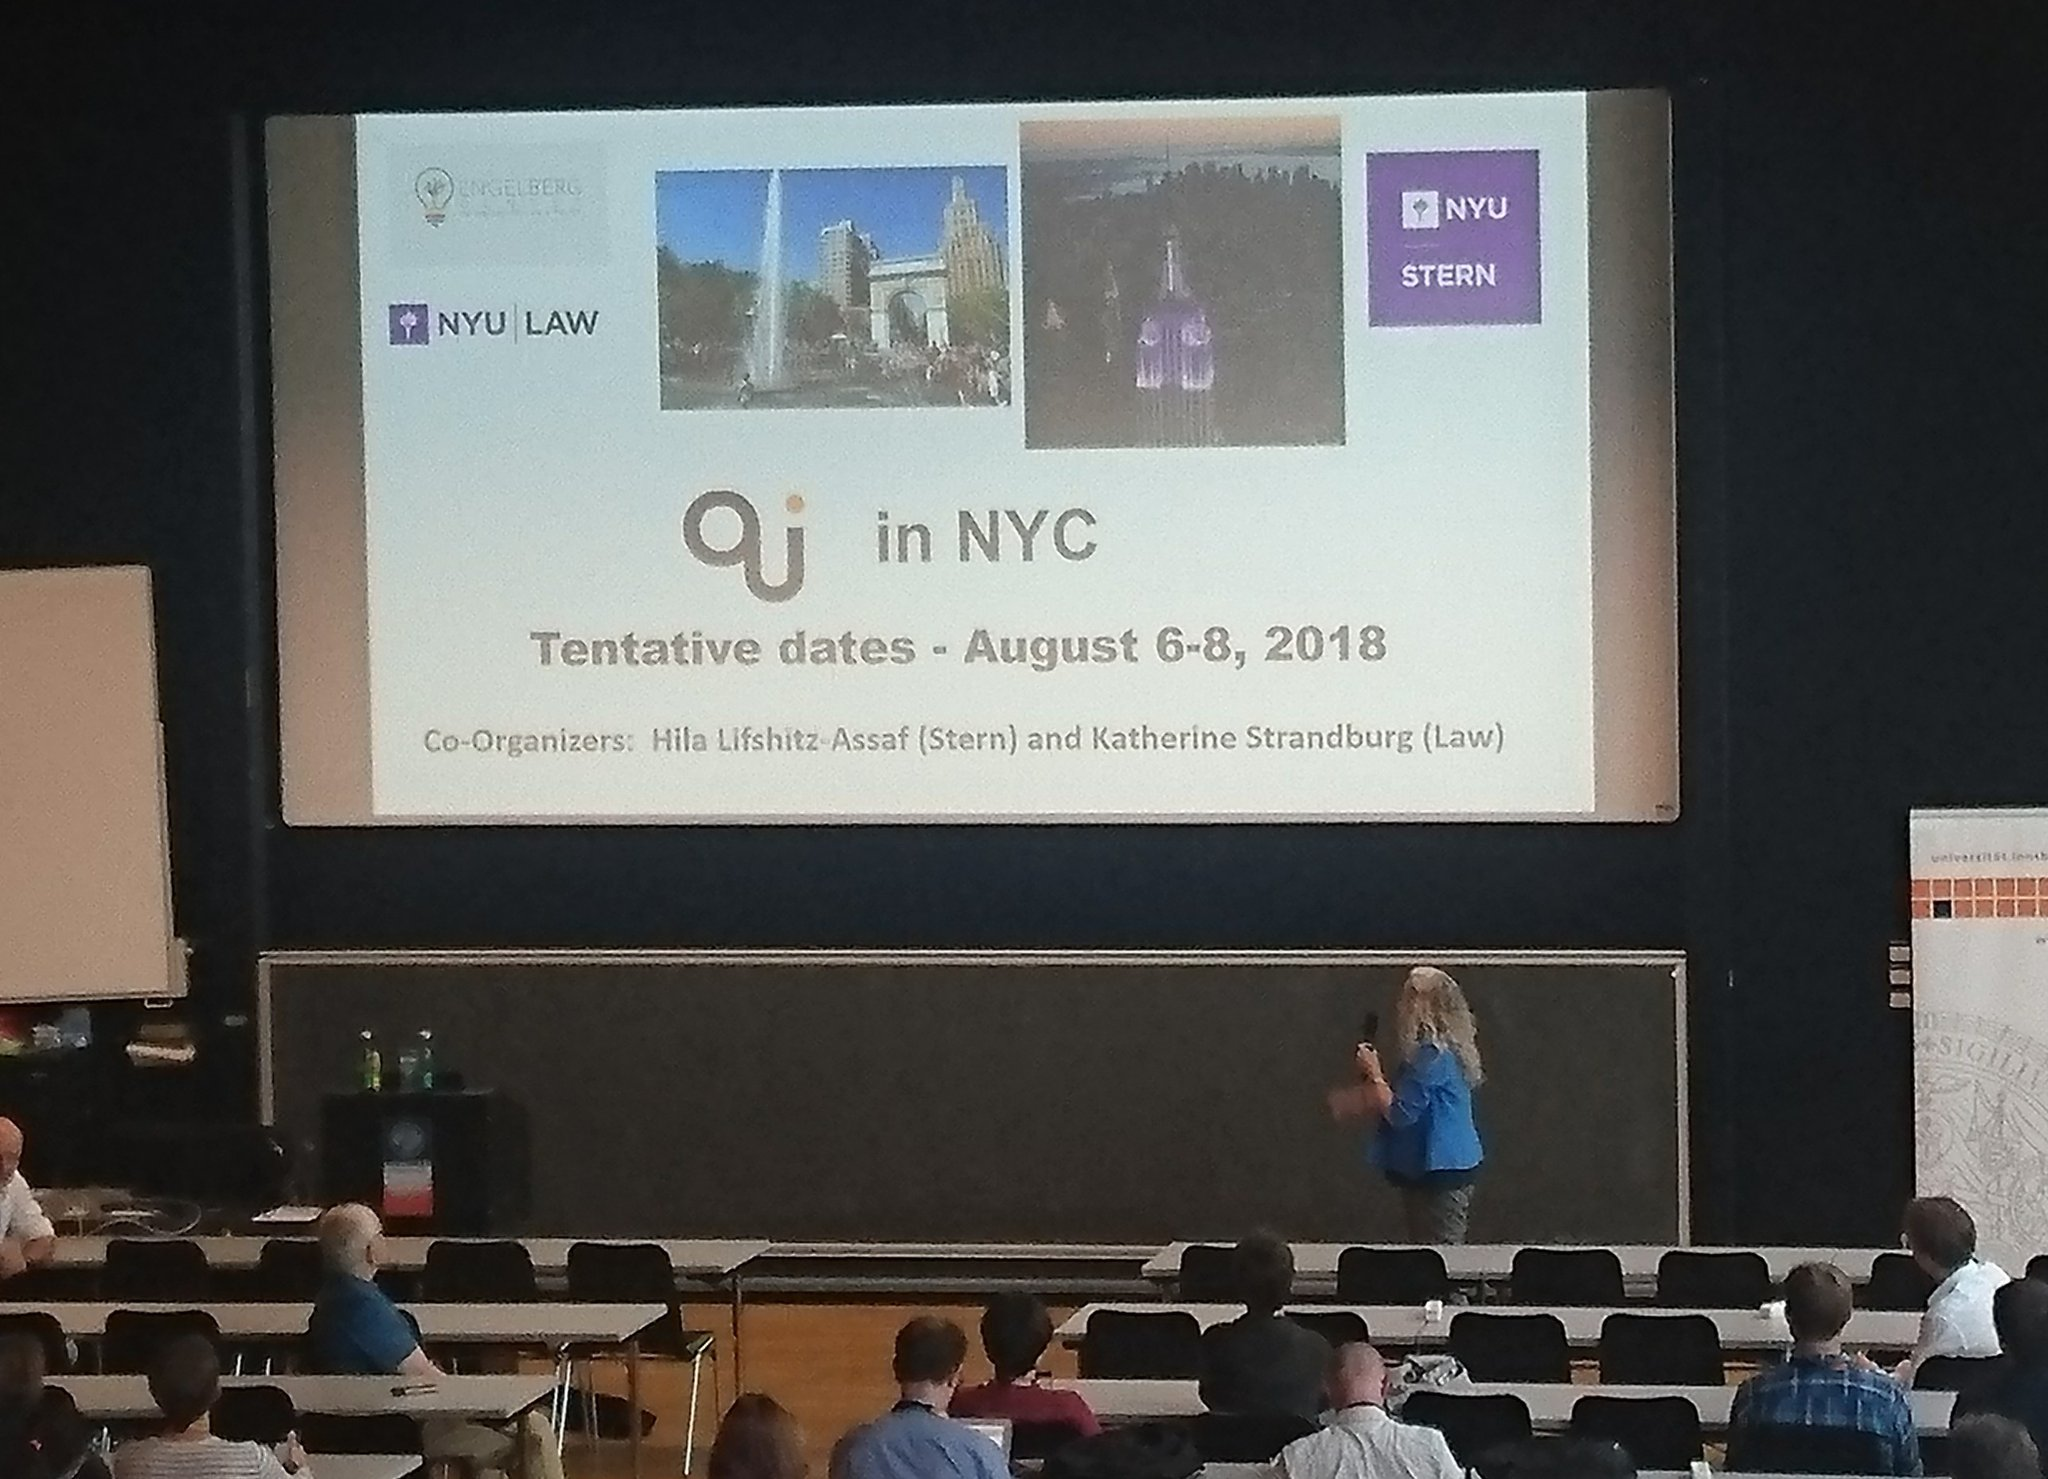 Next year 16th International Open and User Conference #NewYork #oui2017 #oui2018 ;-) https://t.co/NQJgnfIPRP